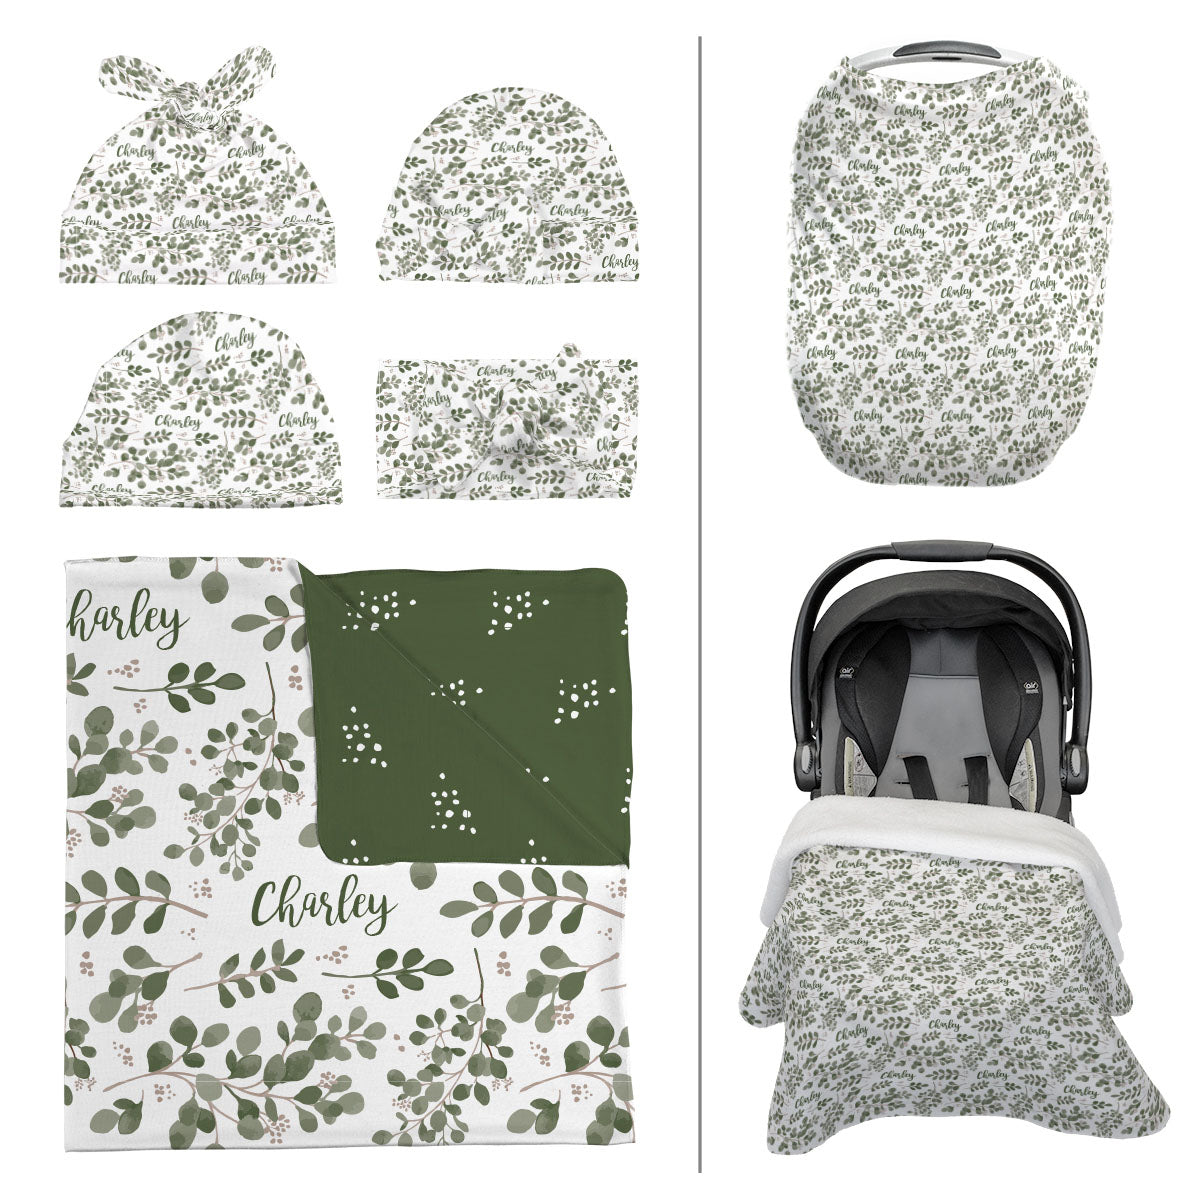 Charley's Farmhouse Greenery | Take Me Home Bundle